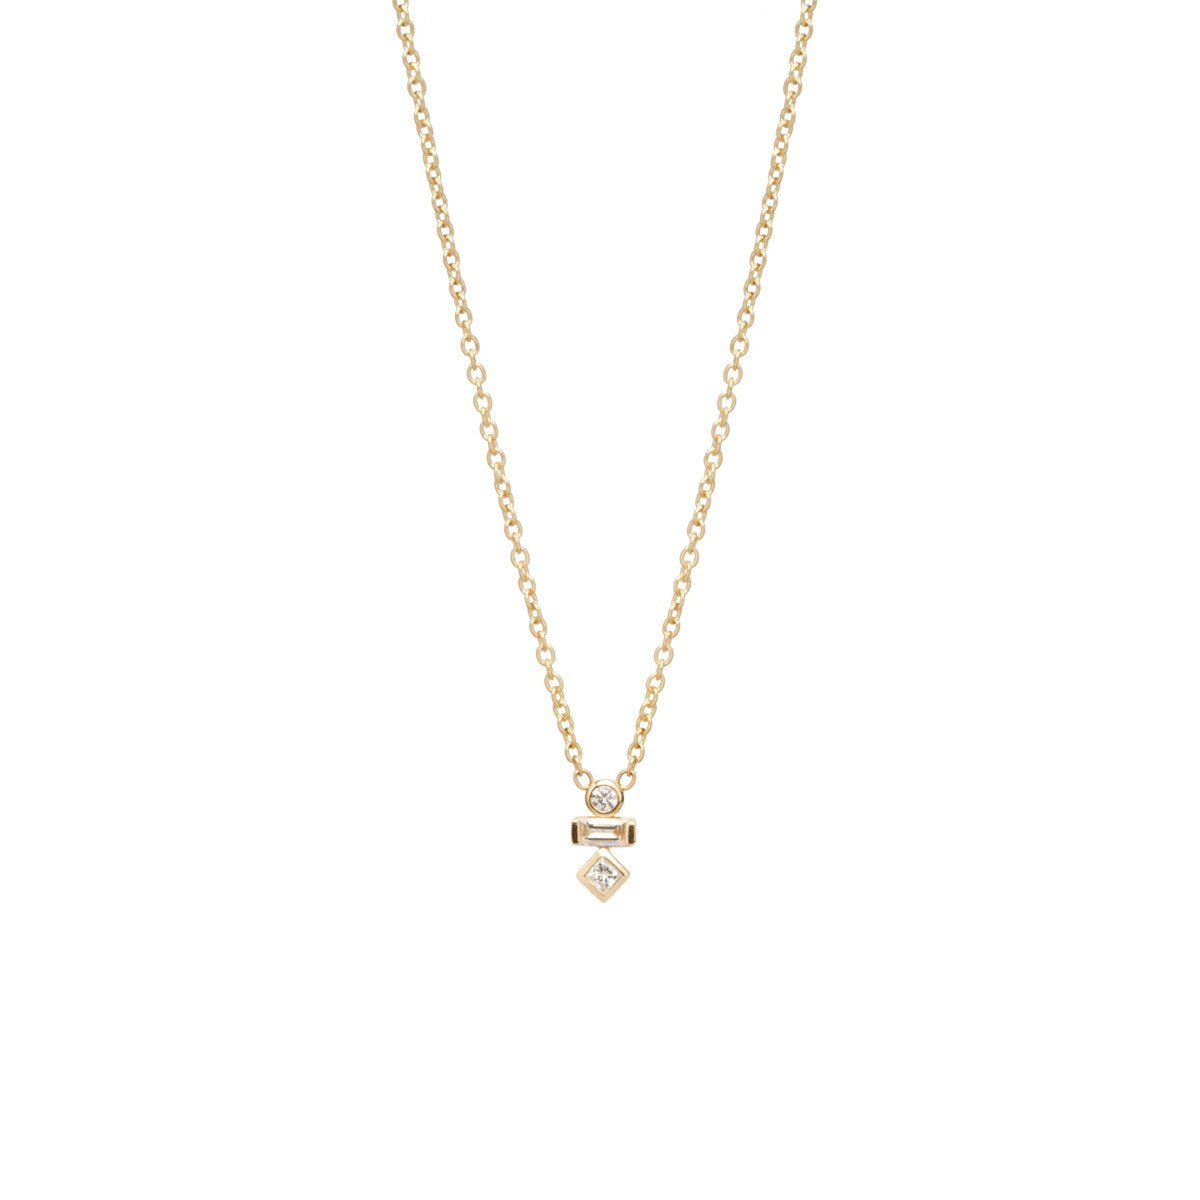 Zoe Chicco 14K Gold Mixed Diamond Necklace